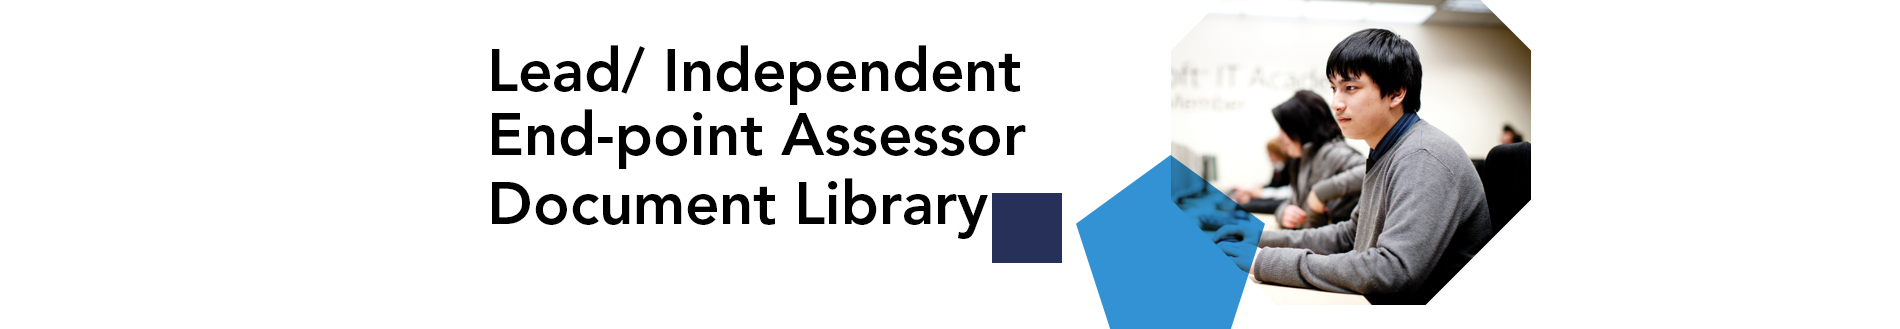 lead independent end-point assessor document library banner